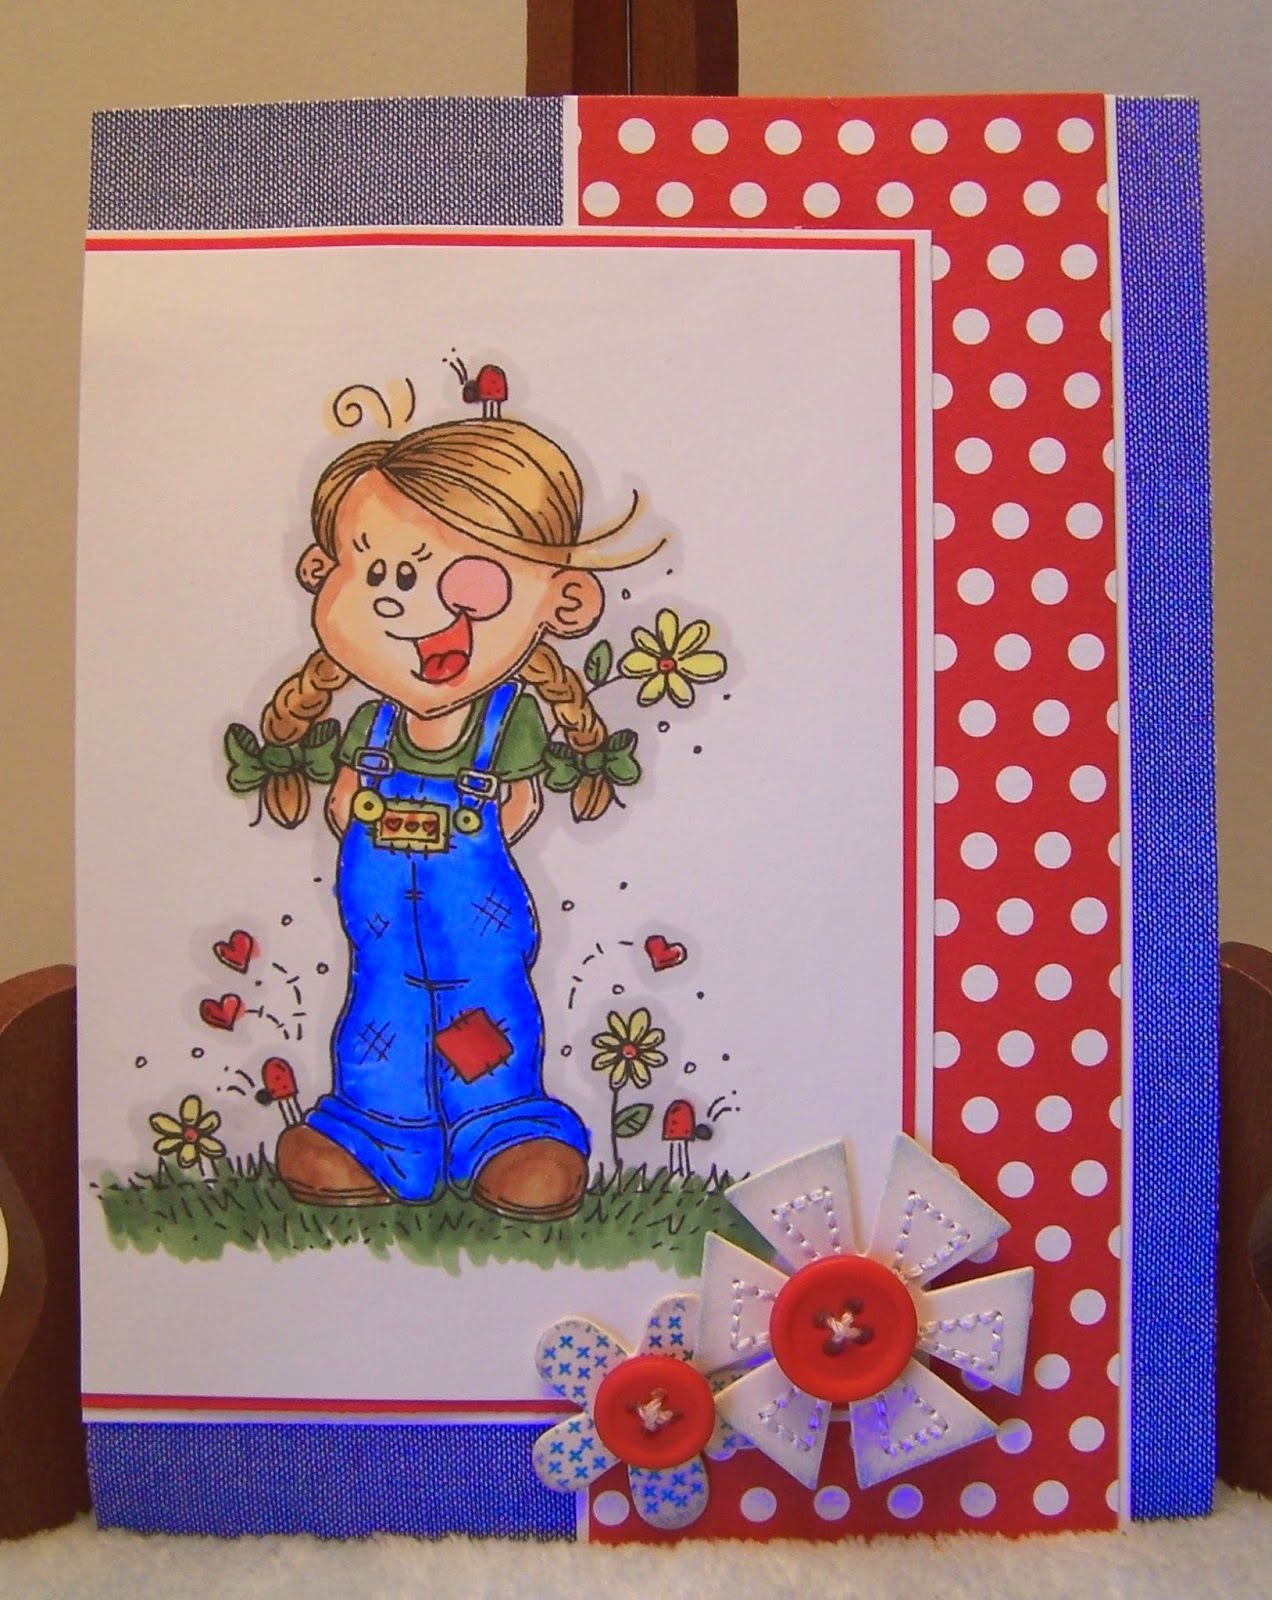 Send a smile 4 kids challenge blog team s card by joyce send send a smile 4 kids challenge blog team s card by joyce kristyandbryce Image collections